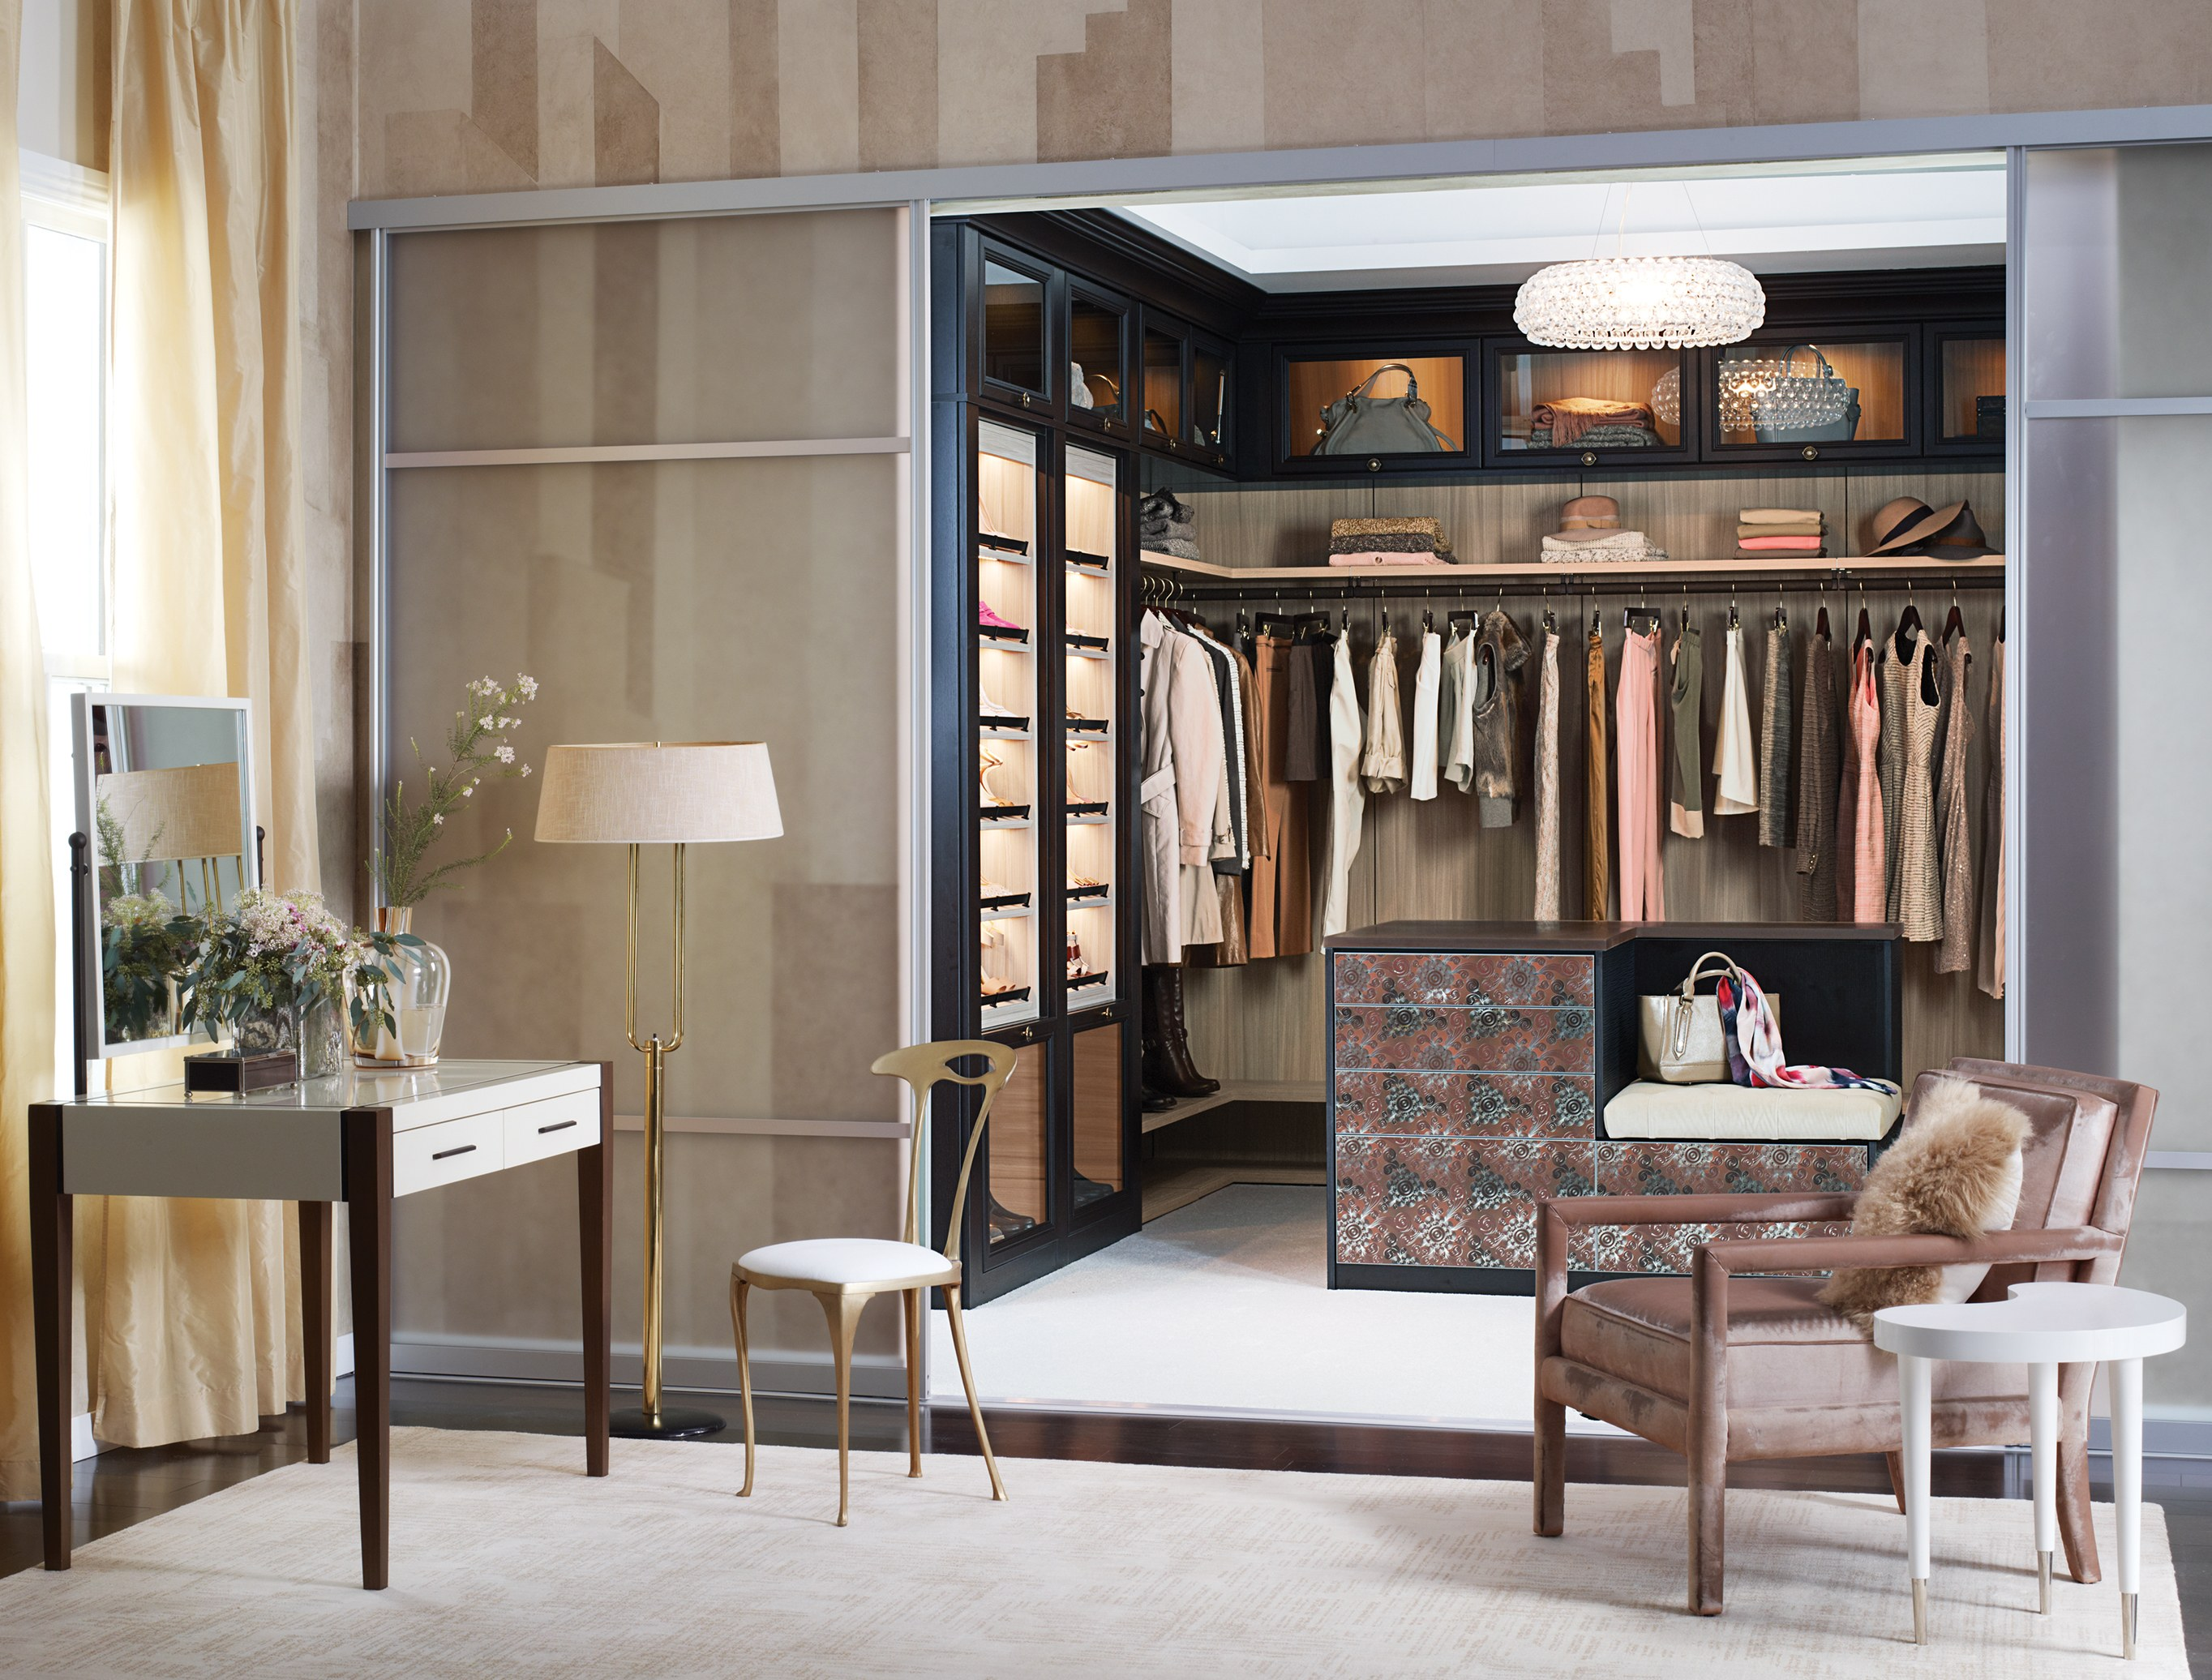 California Closets Nyc | California Closets Ny | California Closet Costs